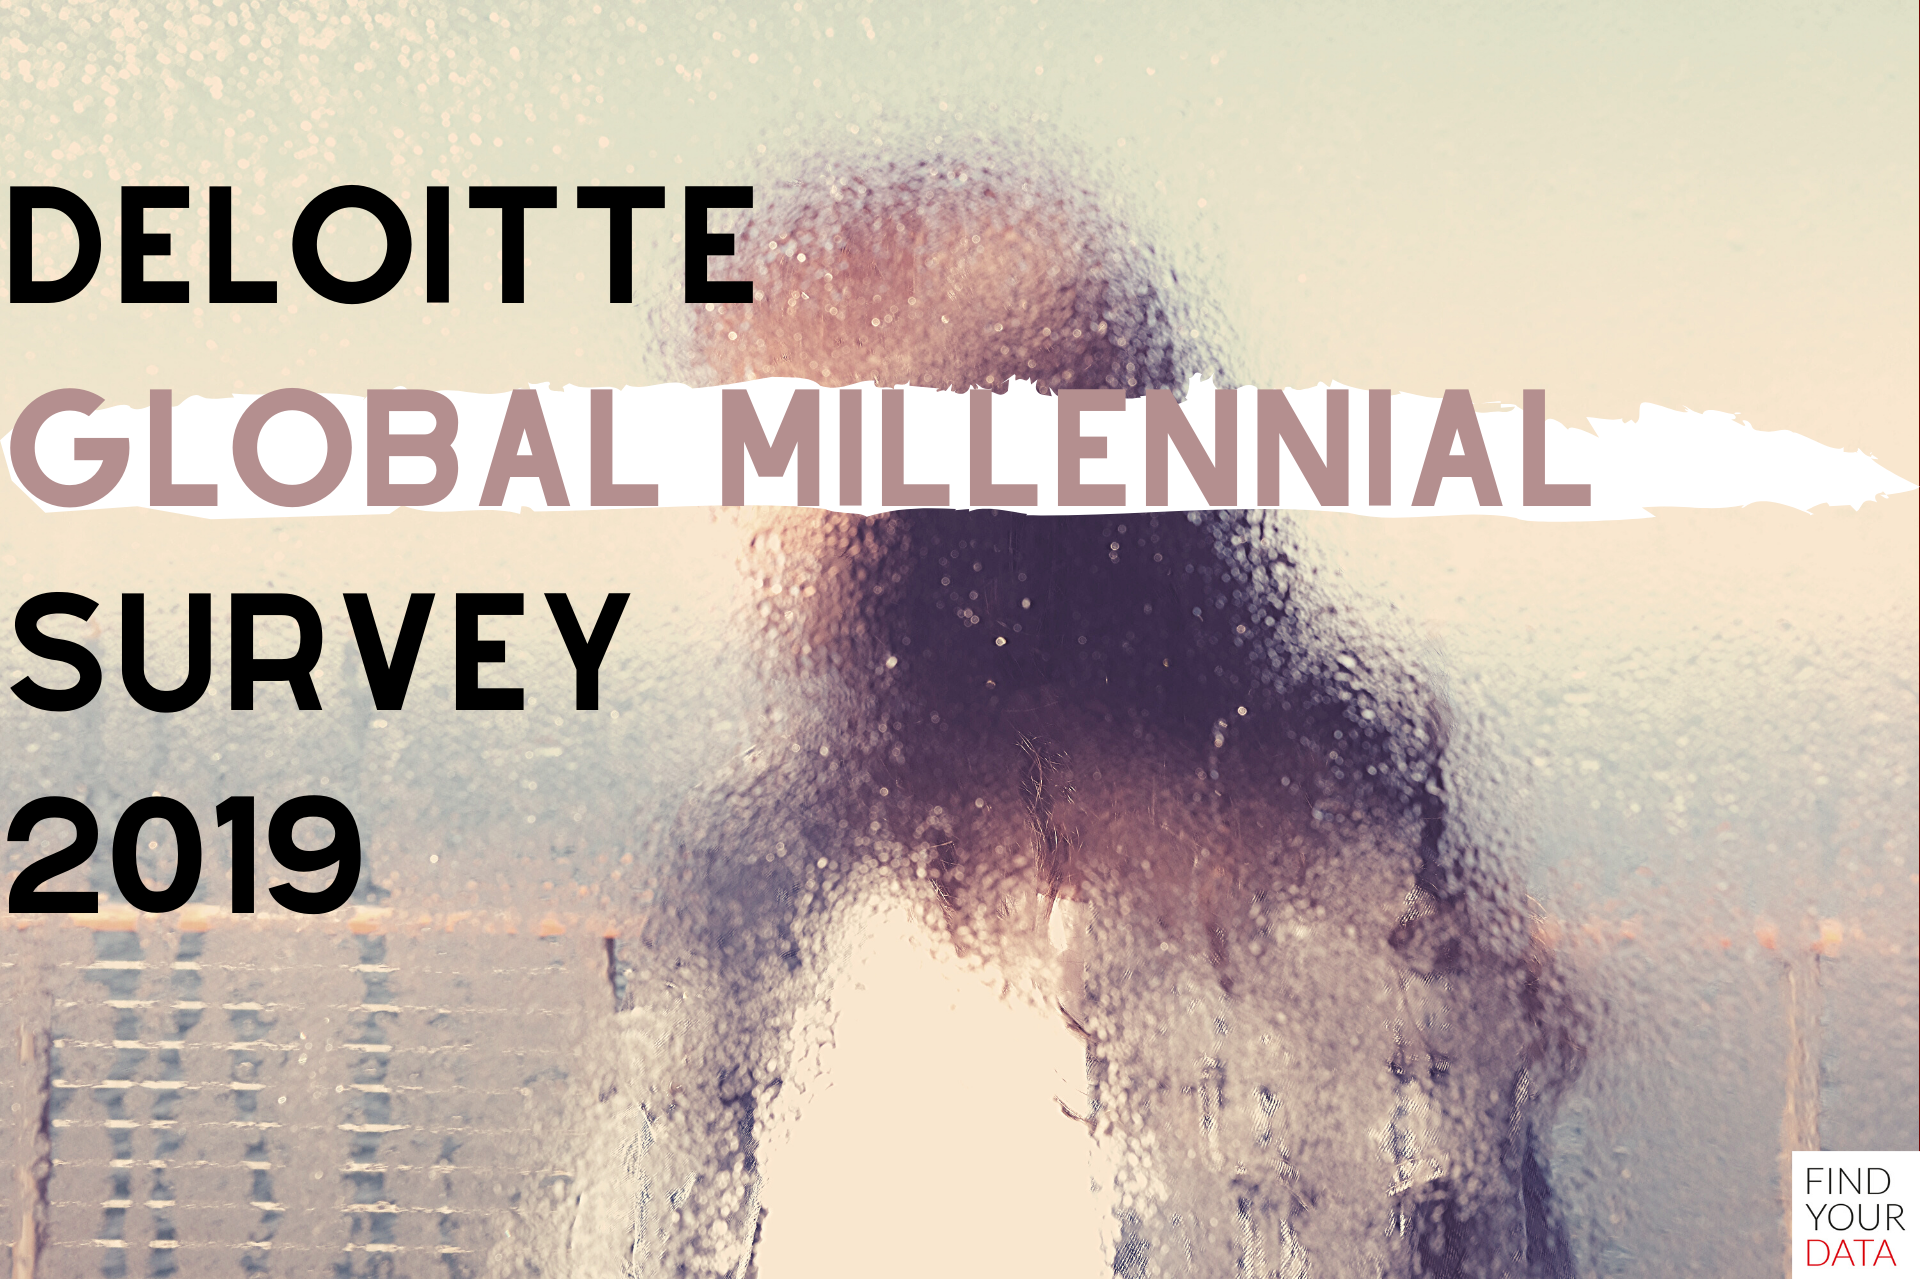 155-millennials-deloitte-survey